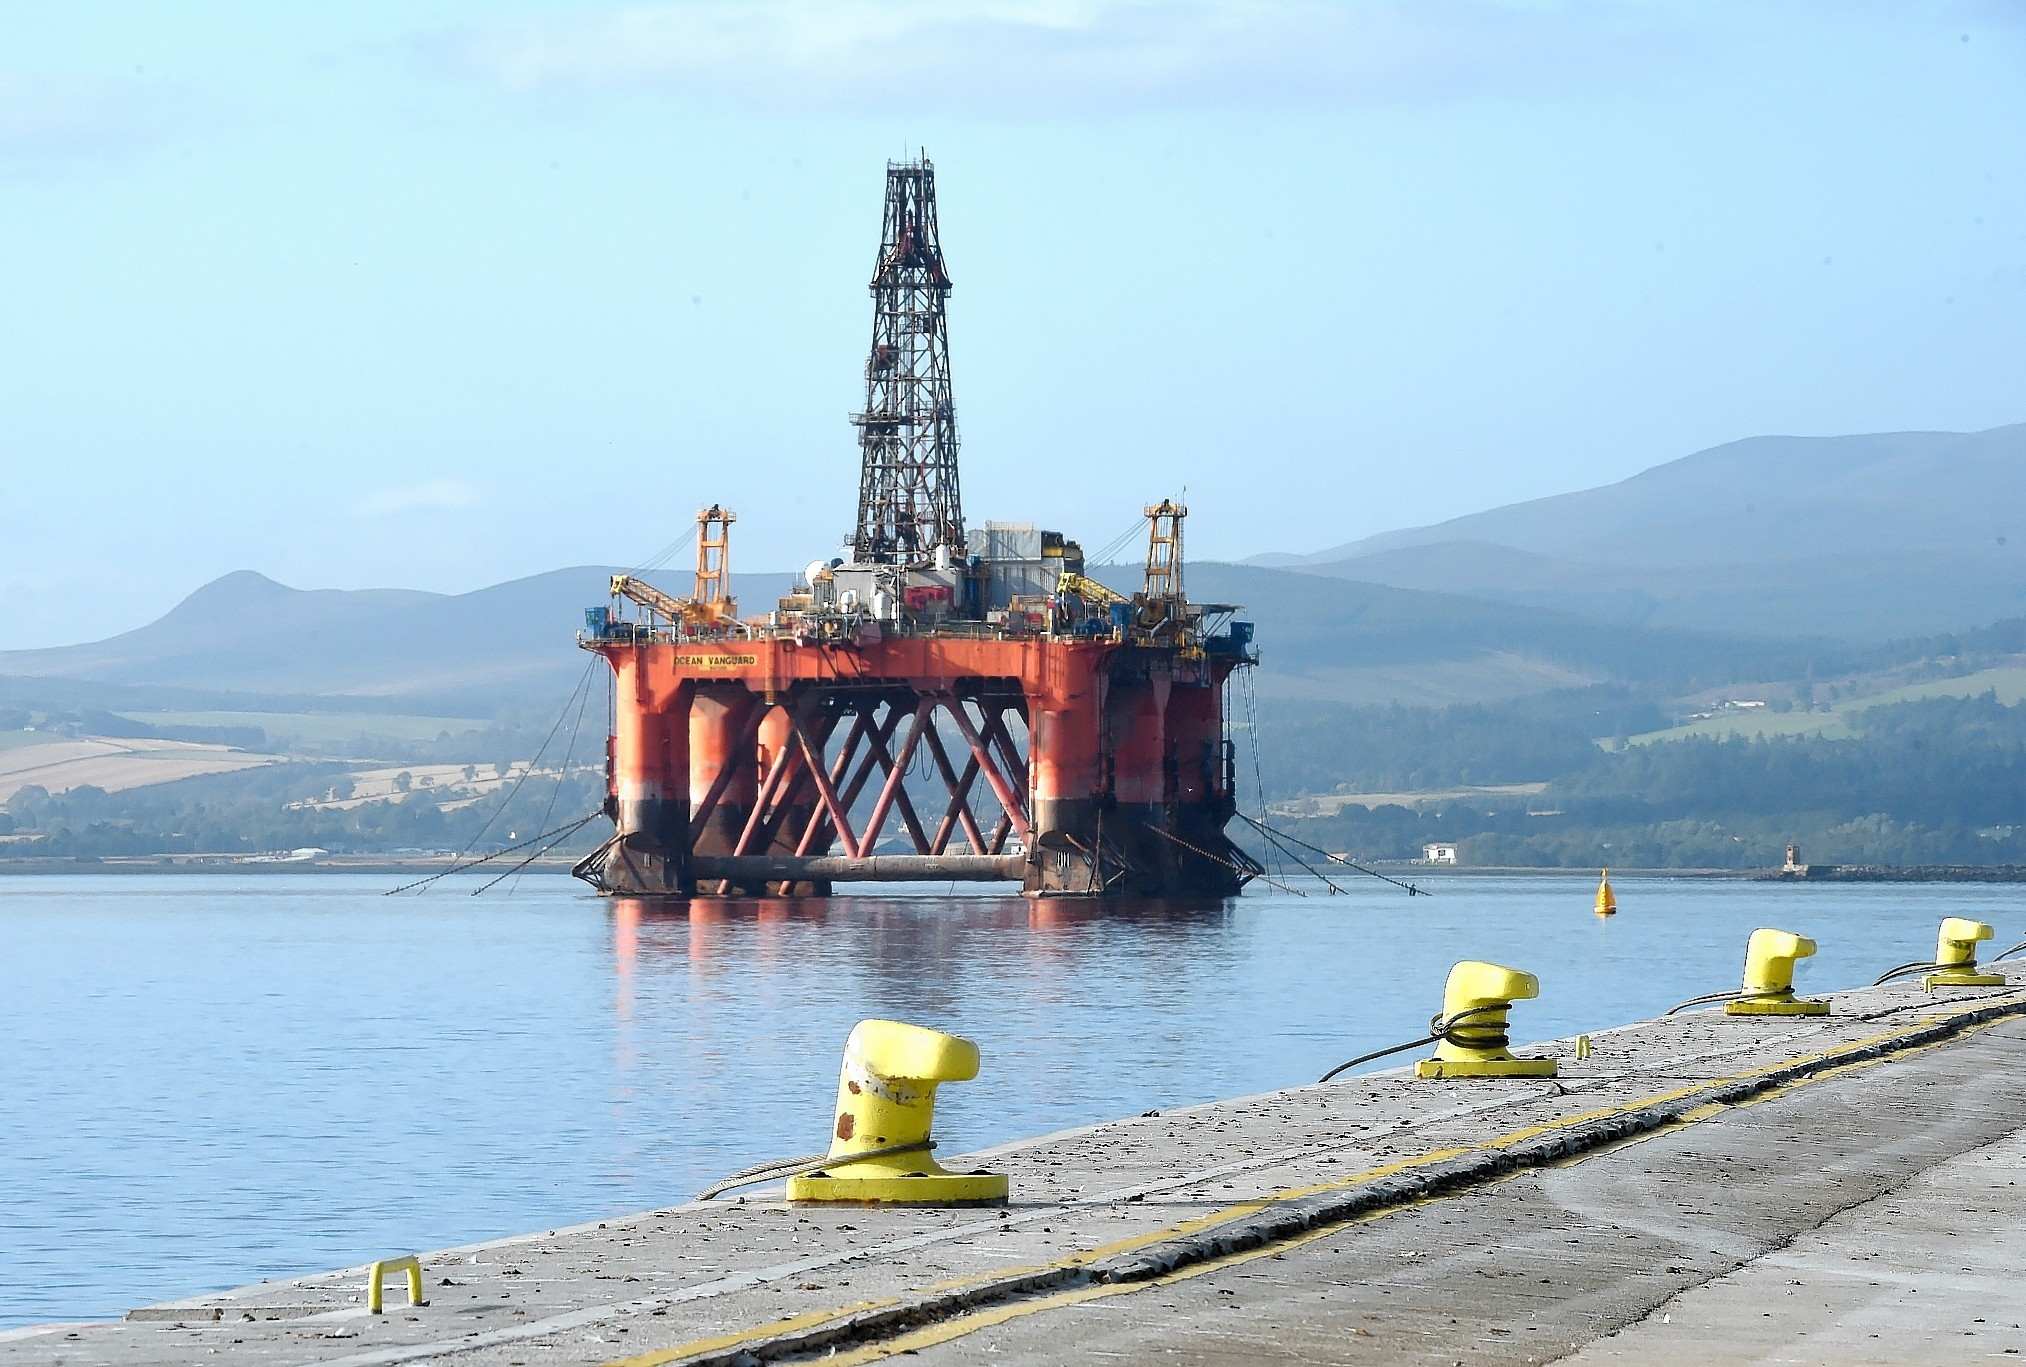 Cromarty Firth Port Authority, Invergordon.